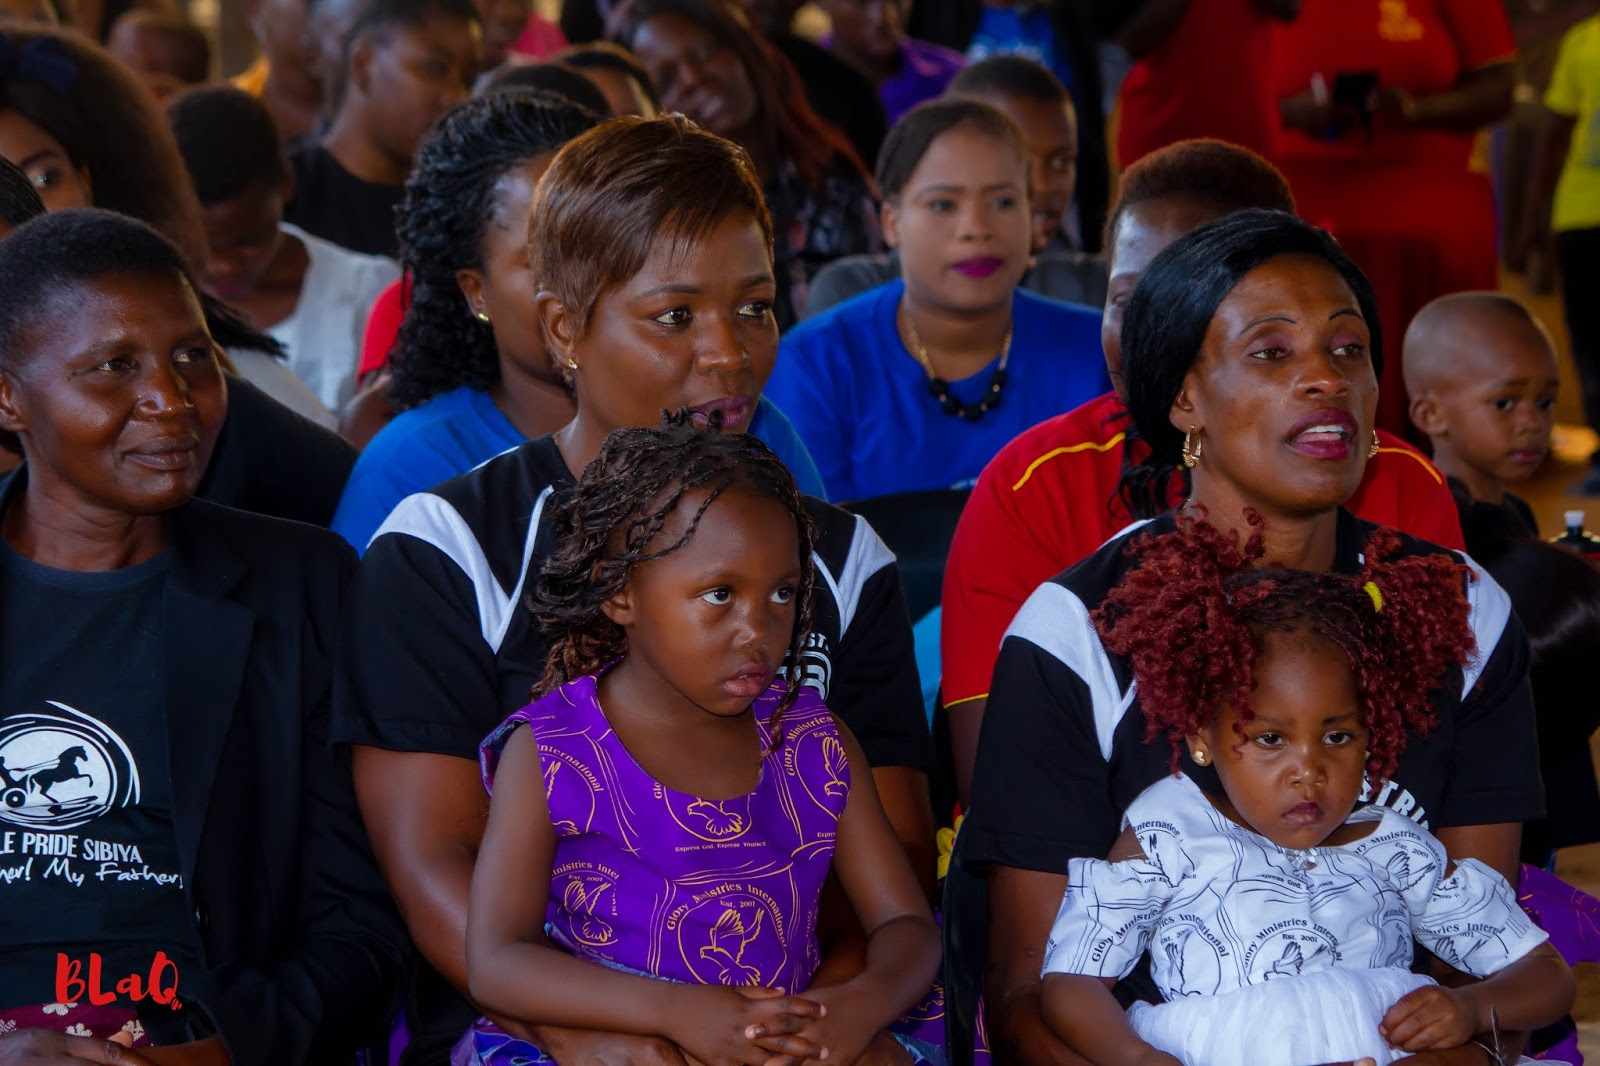 Glory Ministries is an international movement which was founded in 2001 by Apostle P. Sibiya, in Chitungwiza, Zengeza.